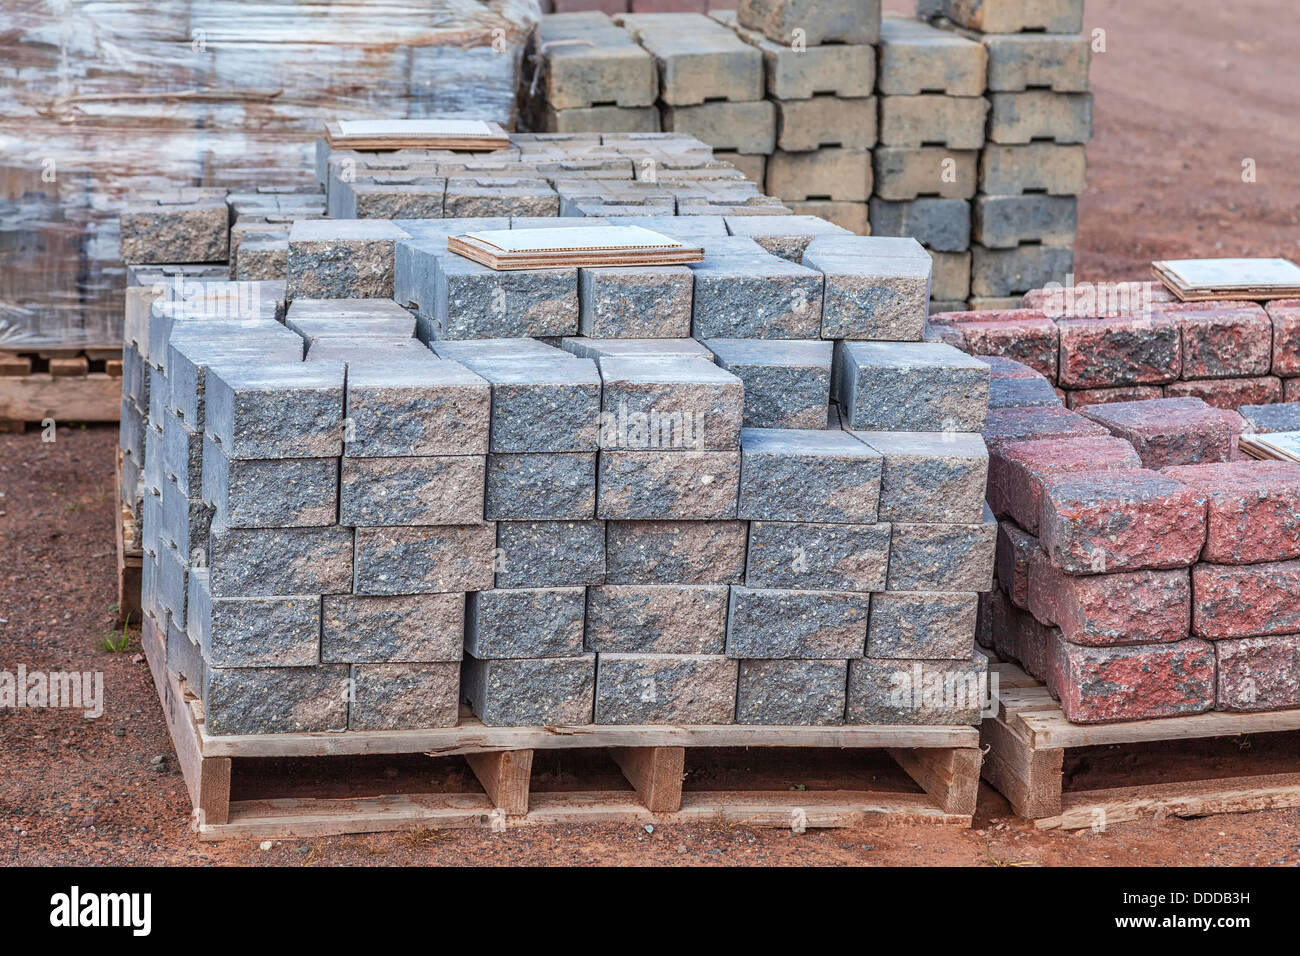 https www alamy com stock photo stacks of various colored concrete pavers paving stone or patio blocks 59915733 html